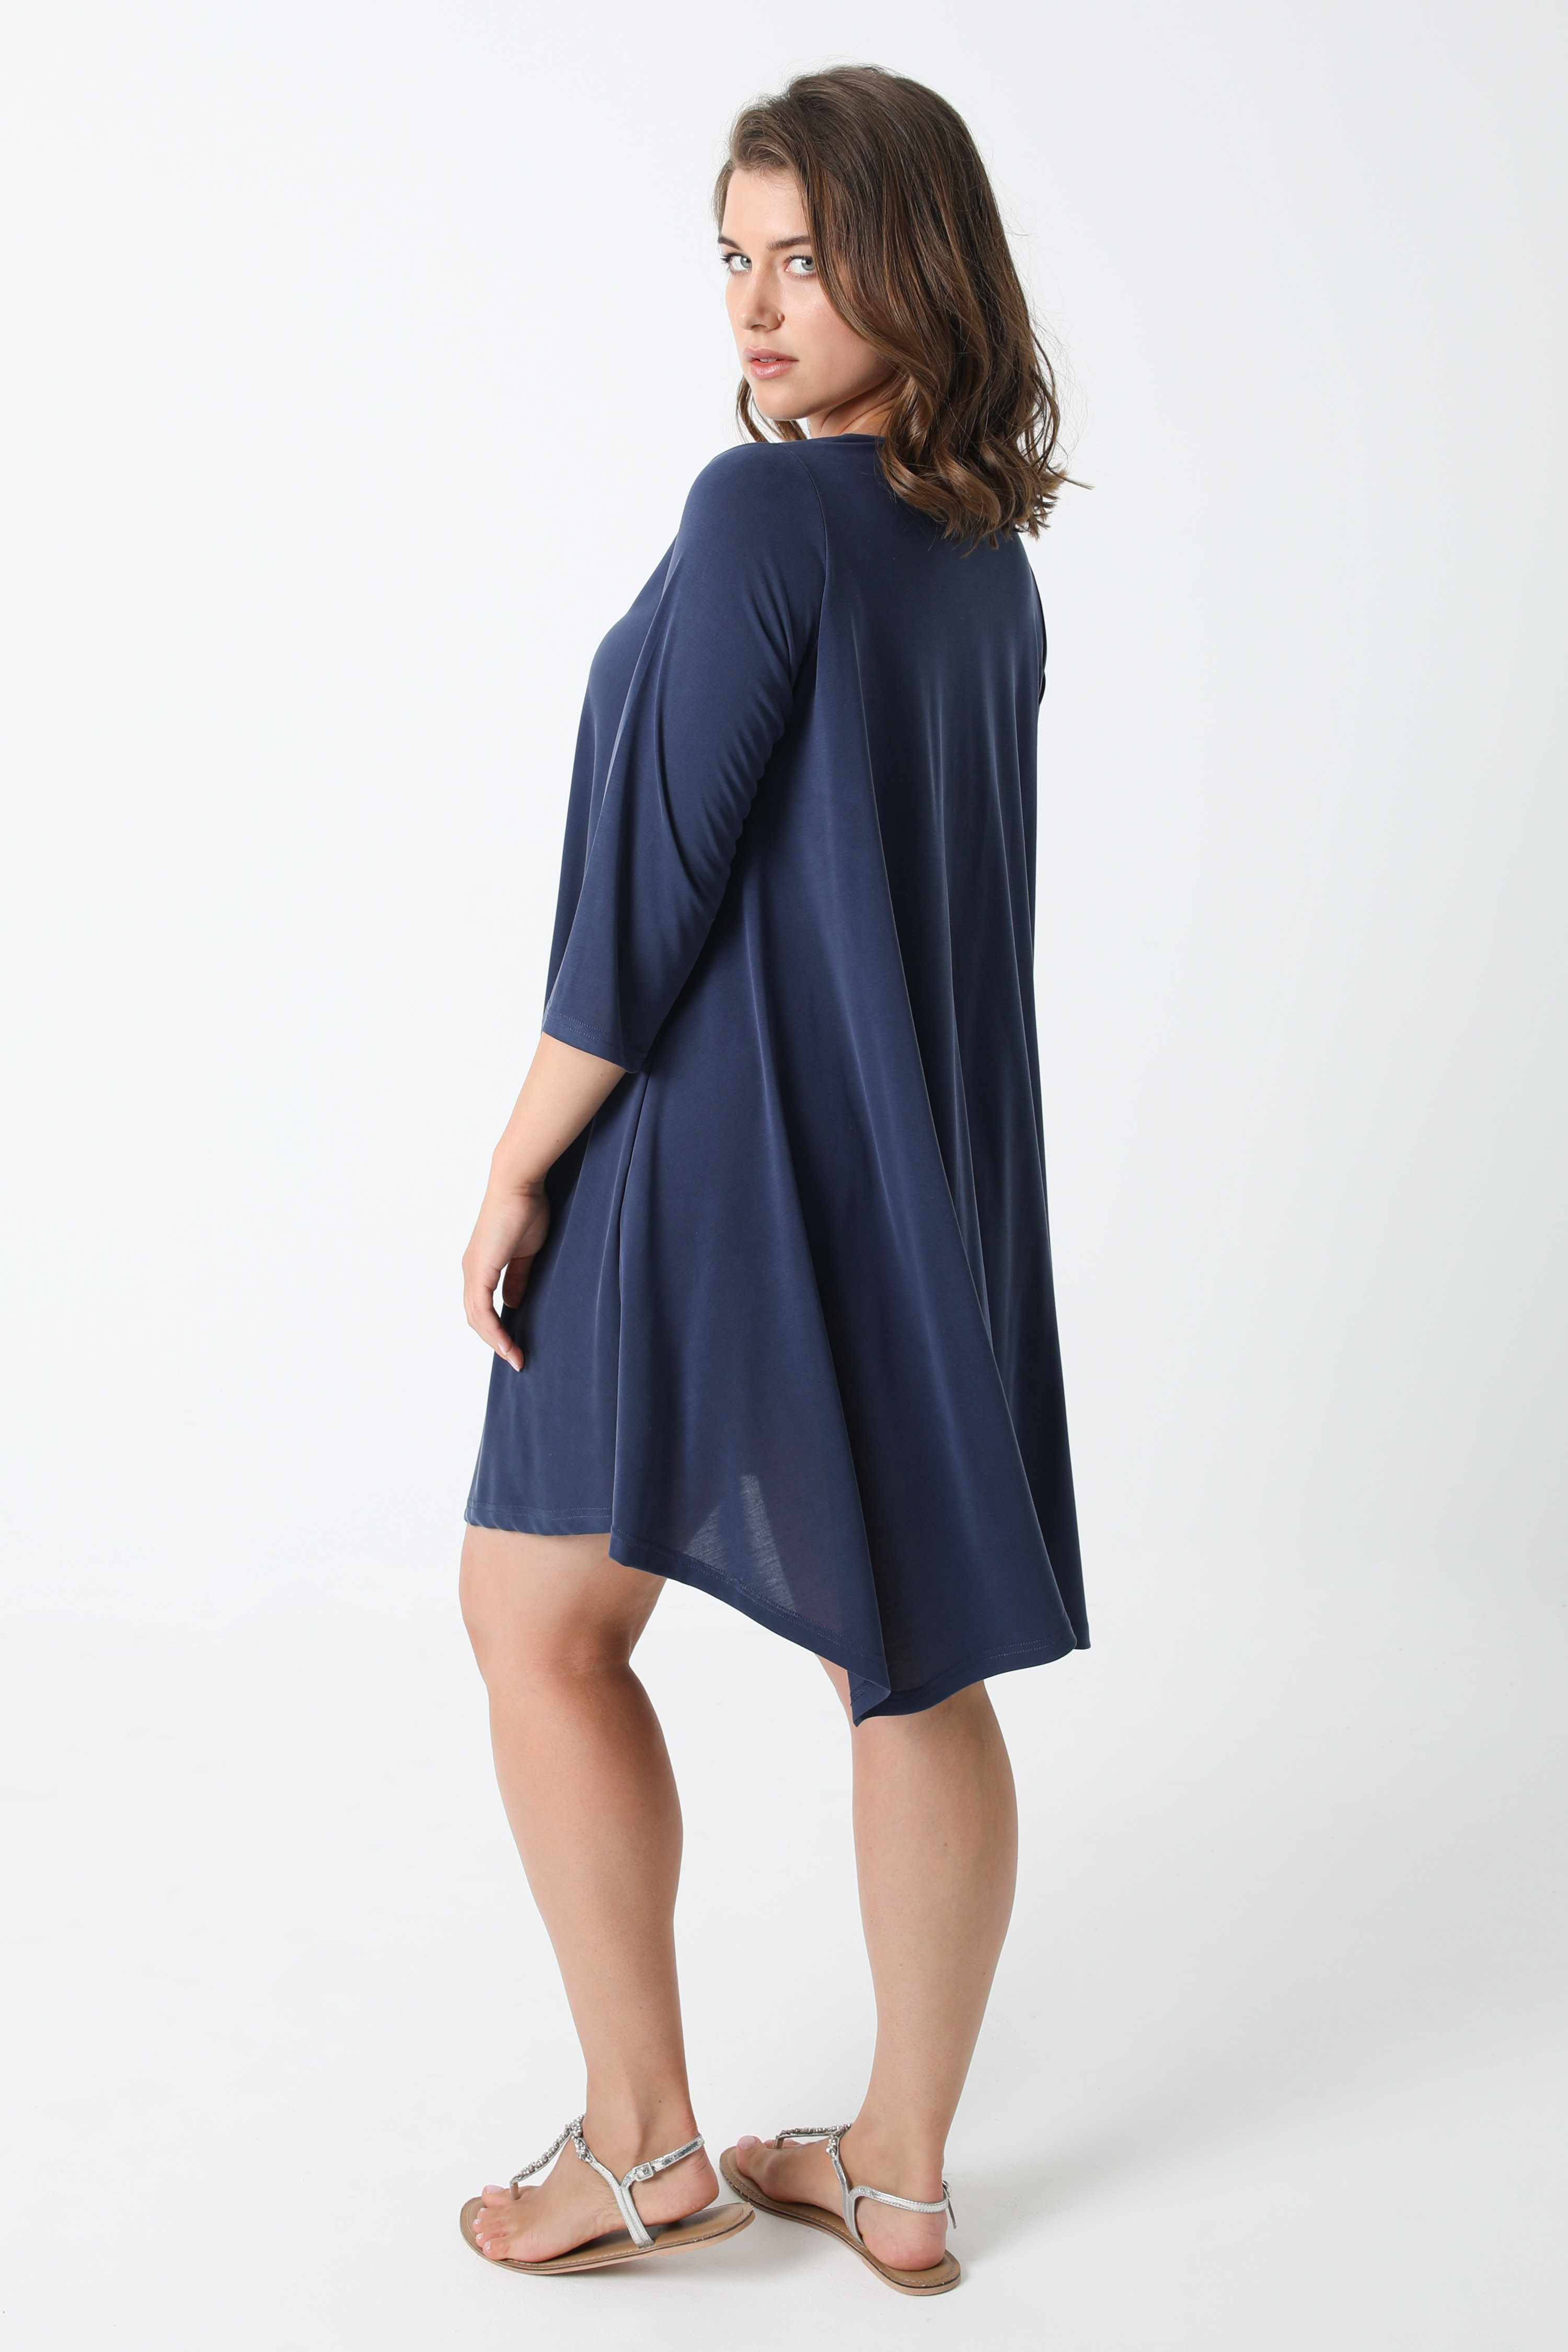 Zipped dress with silver modal ring